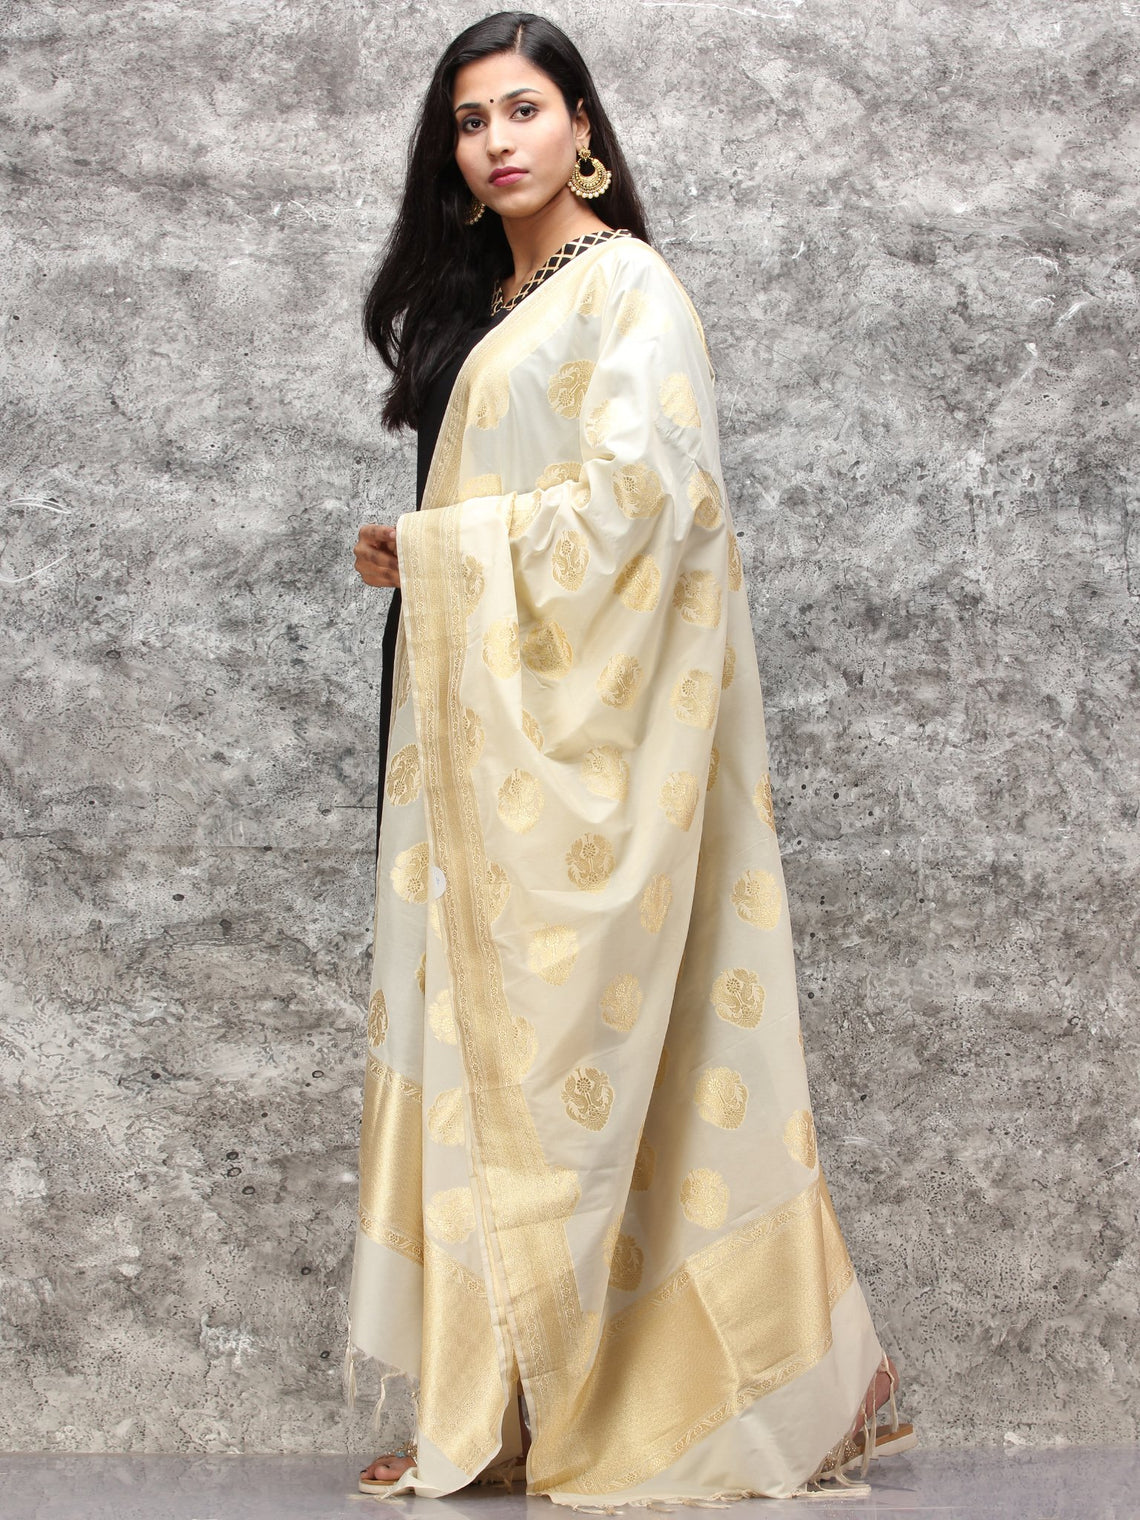 Banarasi Kanni Silk Dupatta With Zari Work - Beige & Gold - D04170887